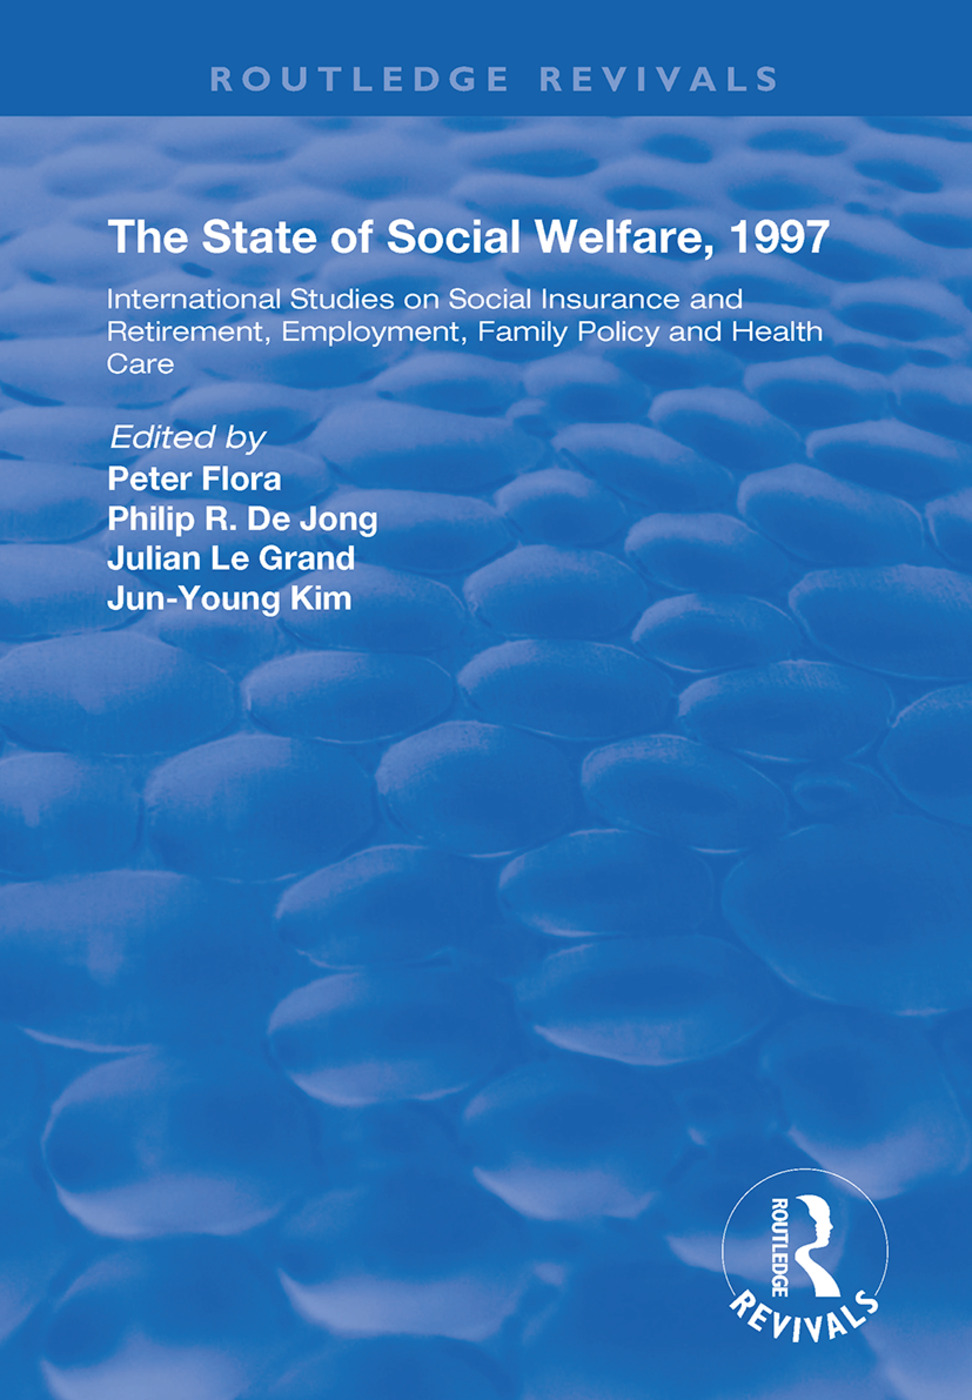 The State and Social Welfare, 1997